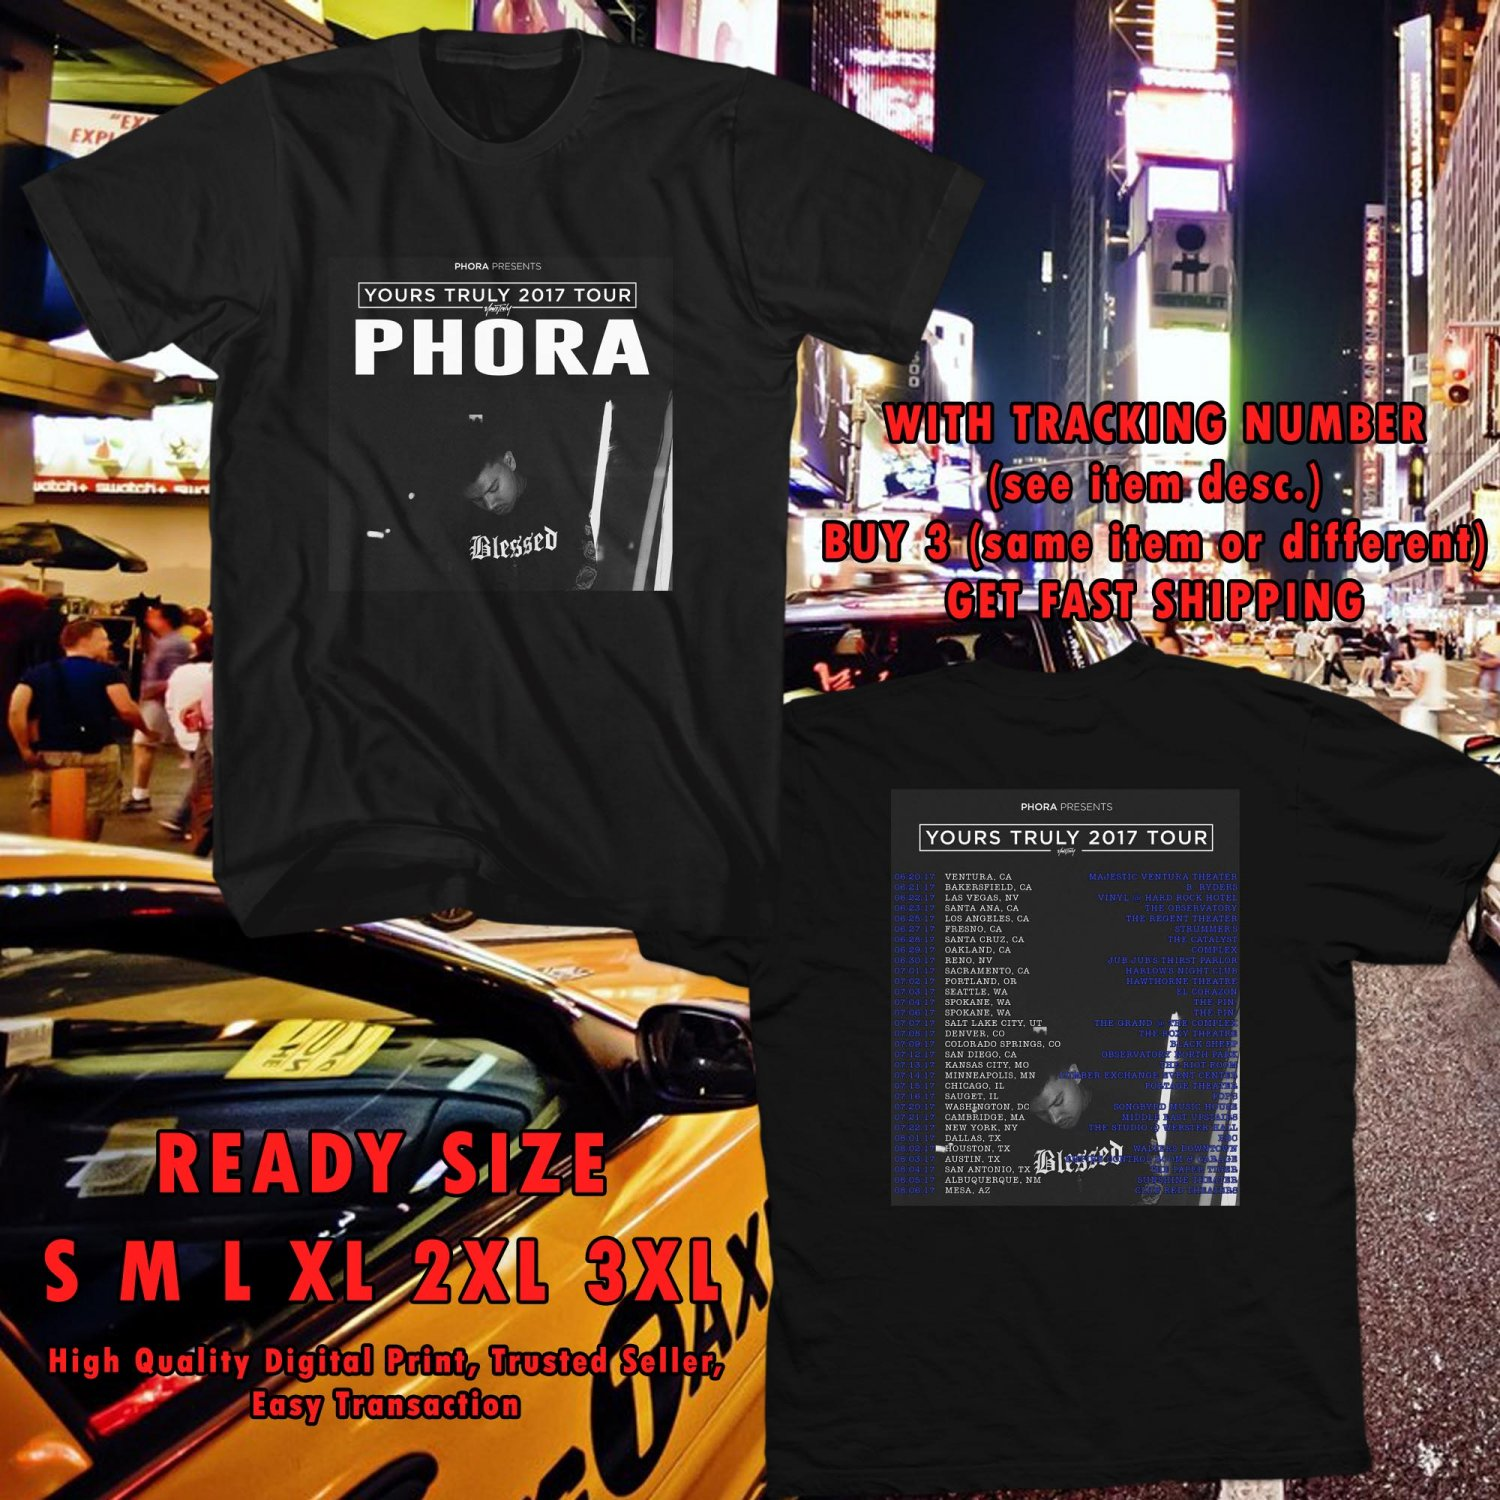 NEW PHORA YOURS TRULY TOUR 2017 BLACK TEE W DATES DMTR 113